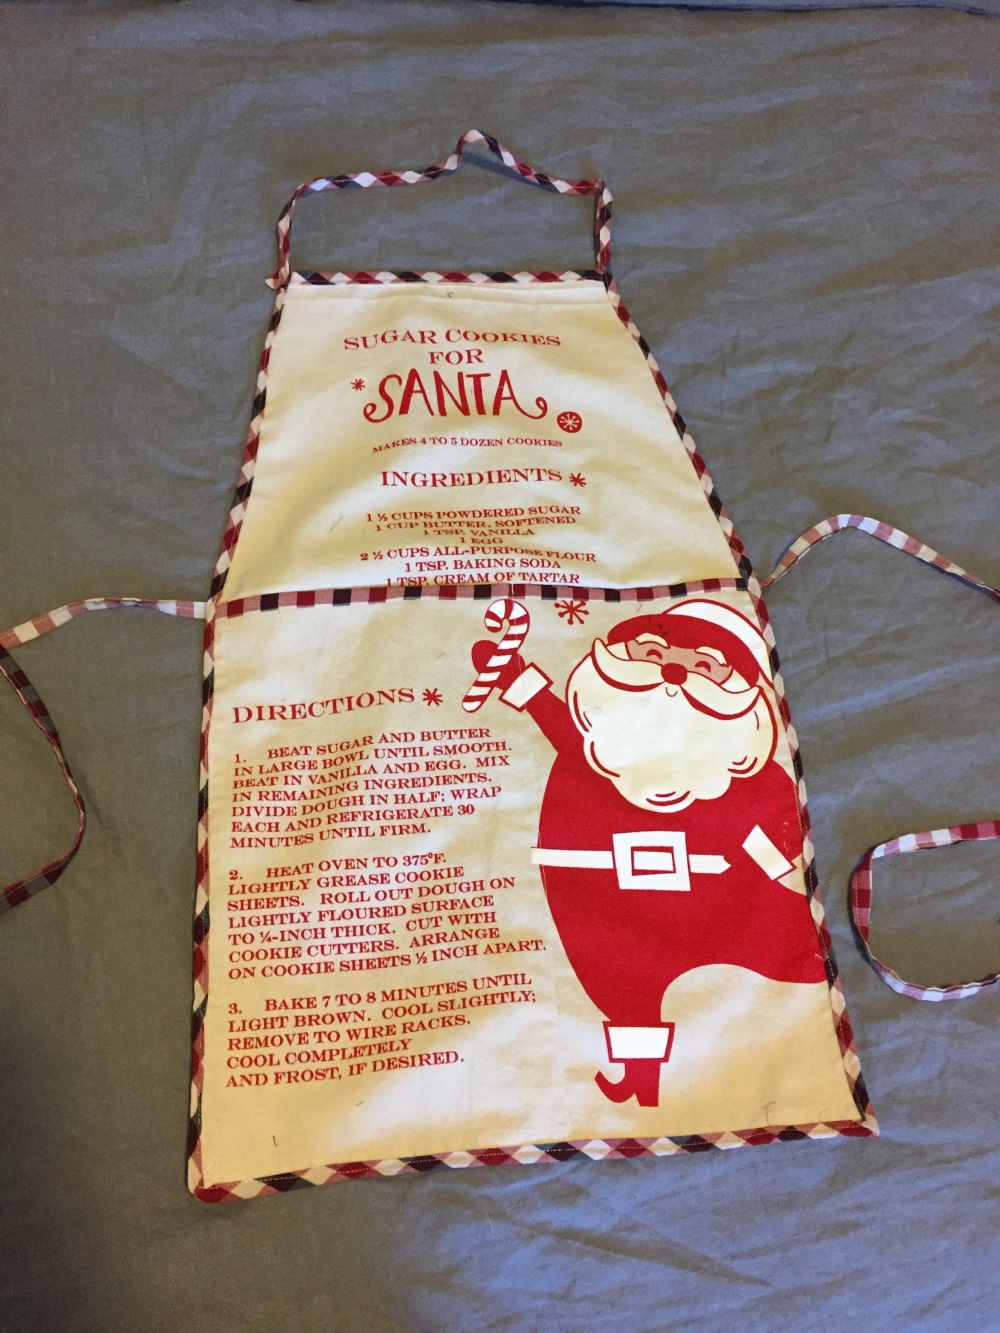 A handmade apron with an image of Santa and a sugar cookie recipe, trimmed with a red and white plaid fabric